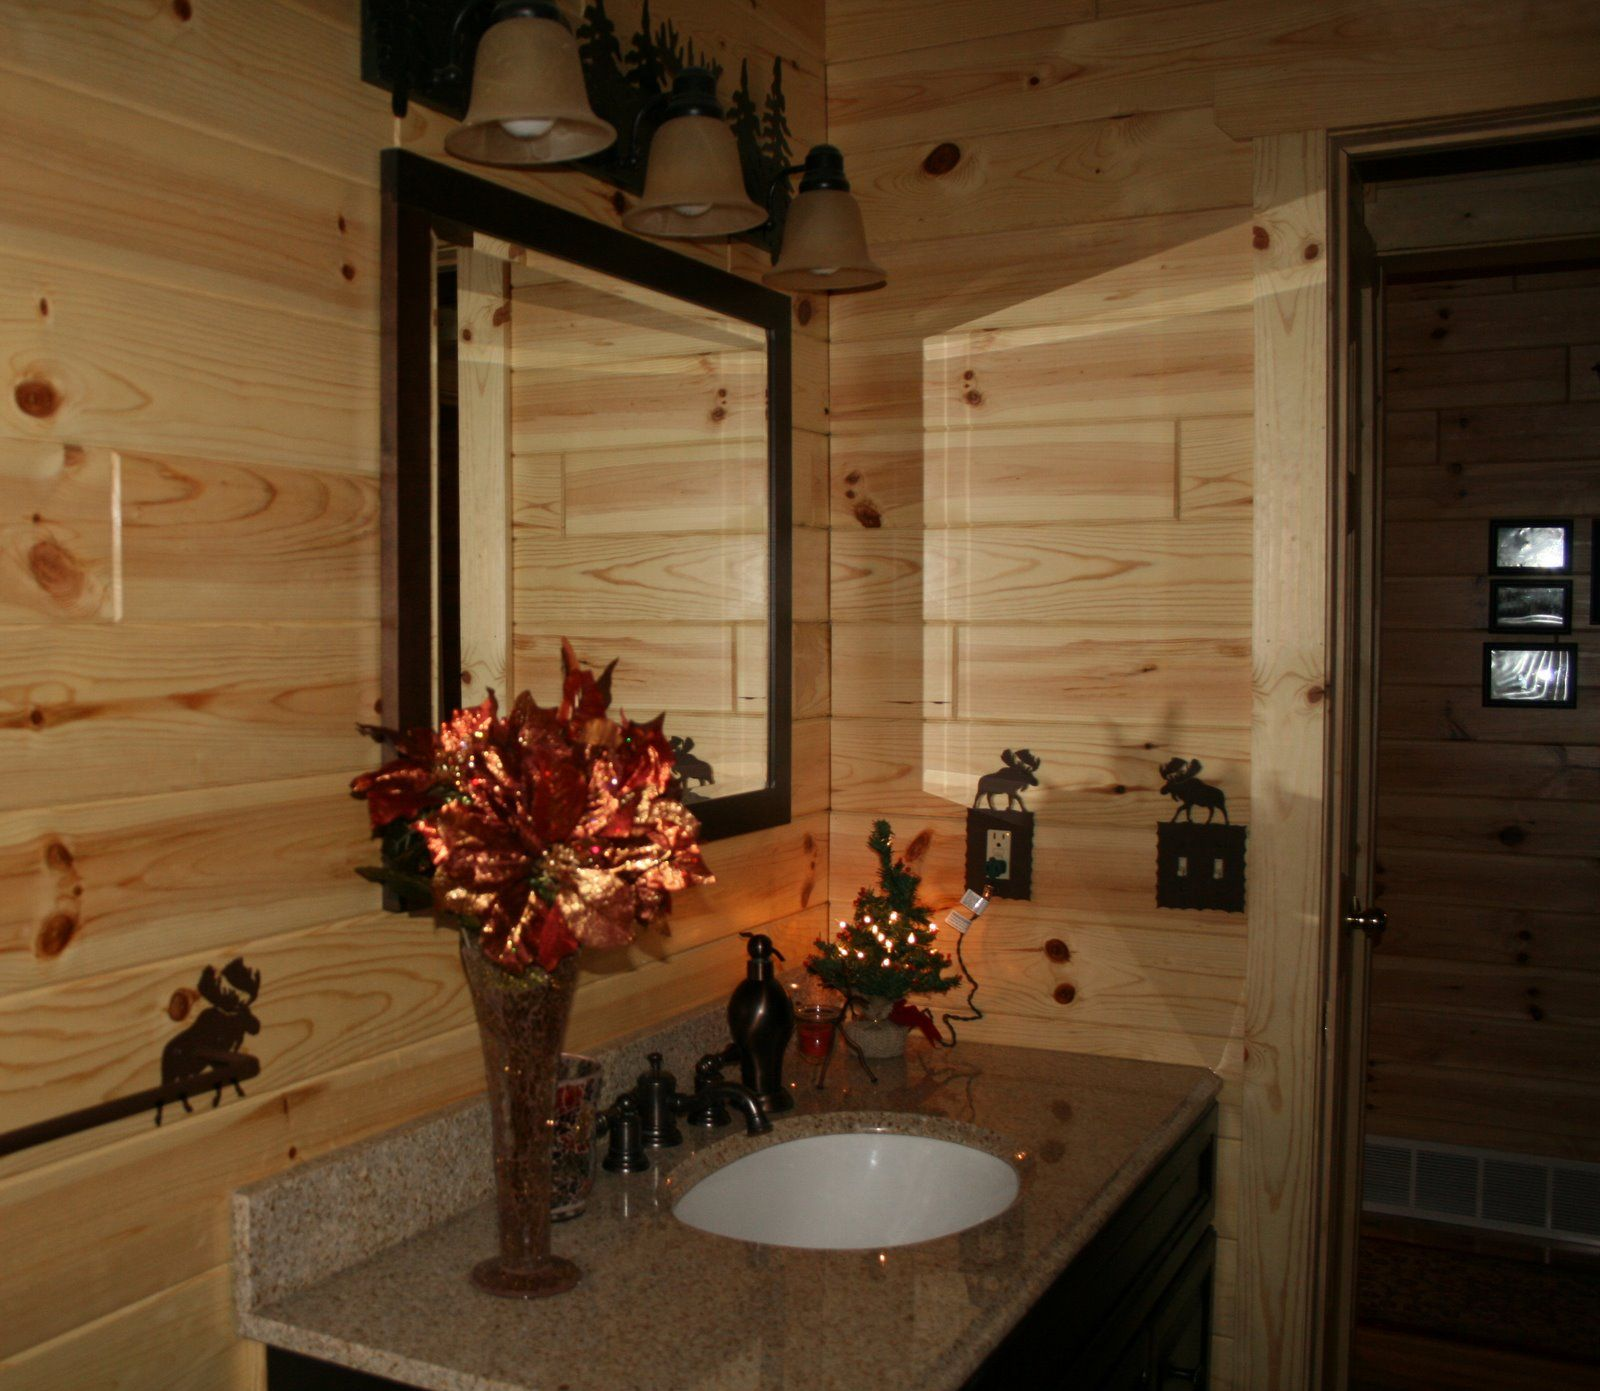 Ideas for bathroom decorating theme with simple and natural wooden wall decor also rh pinterest